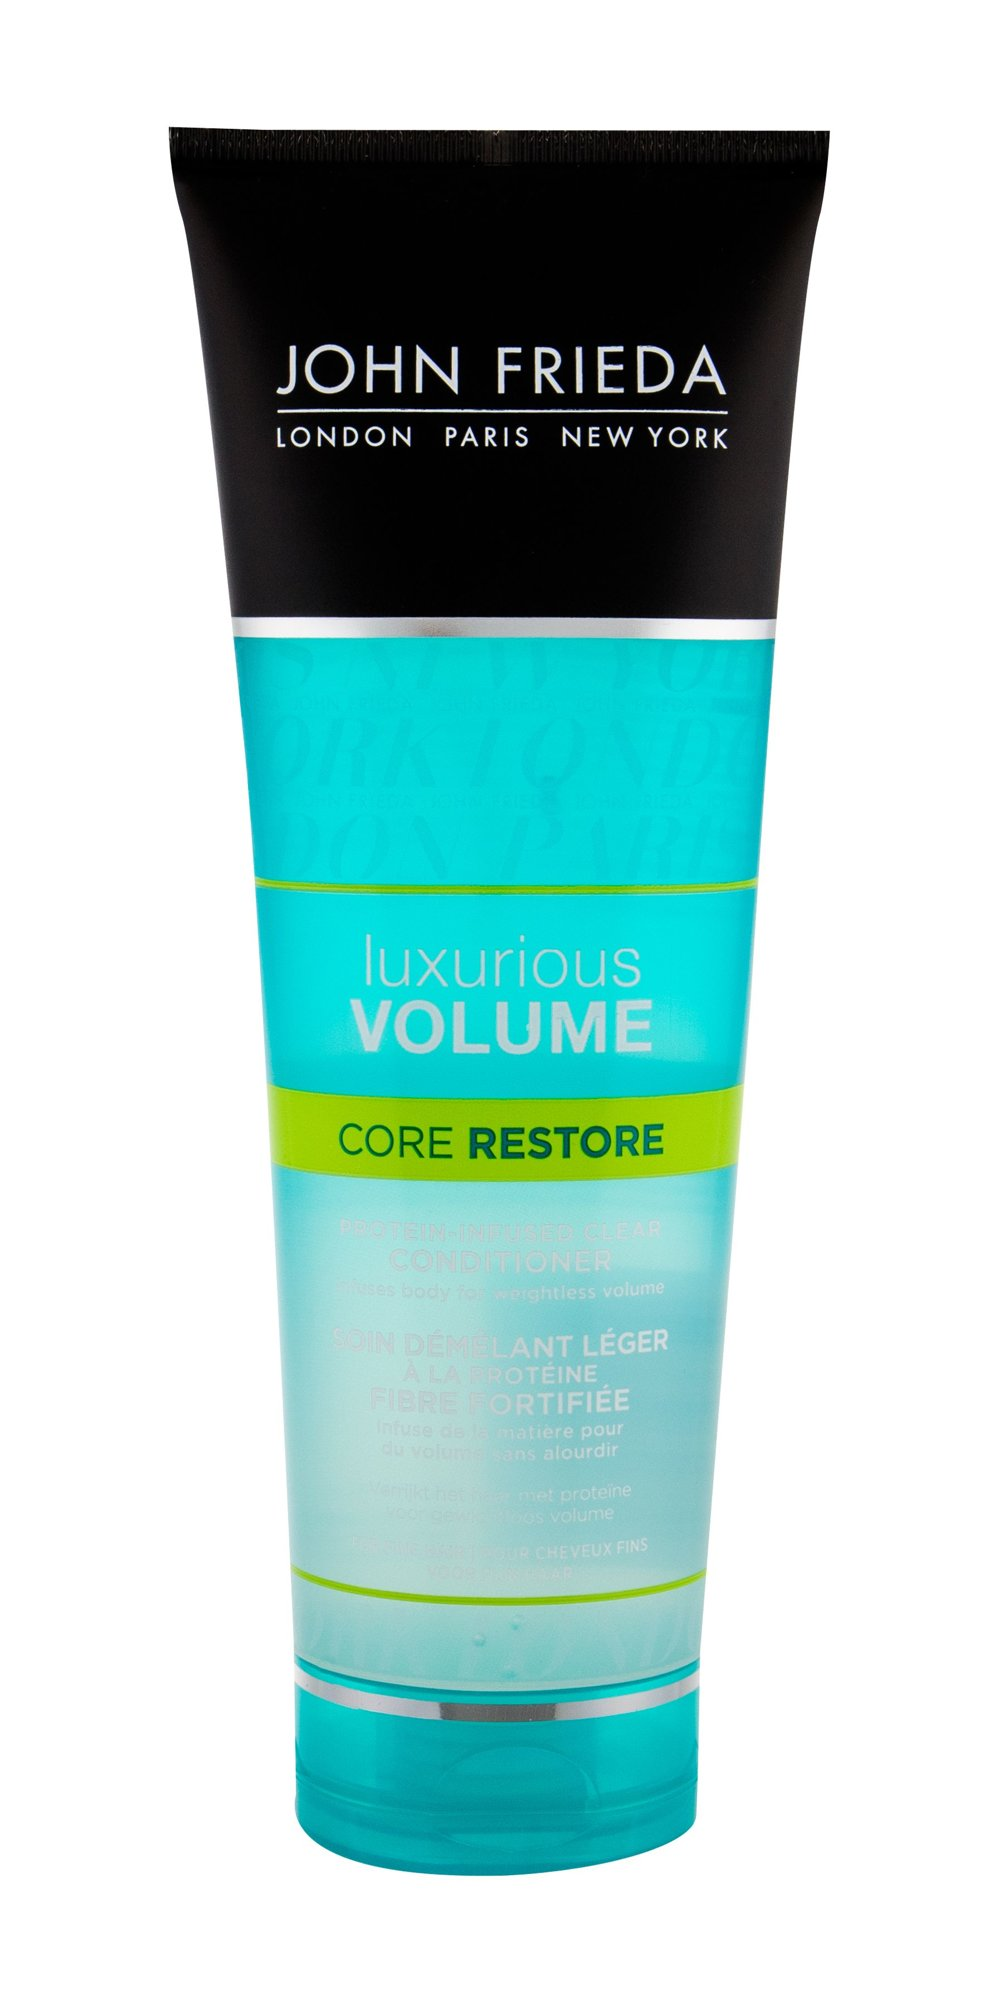 John Frieda Luxurious Volume Conditioner 250ml  Core Restore